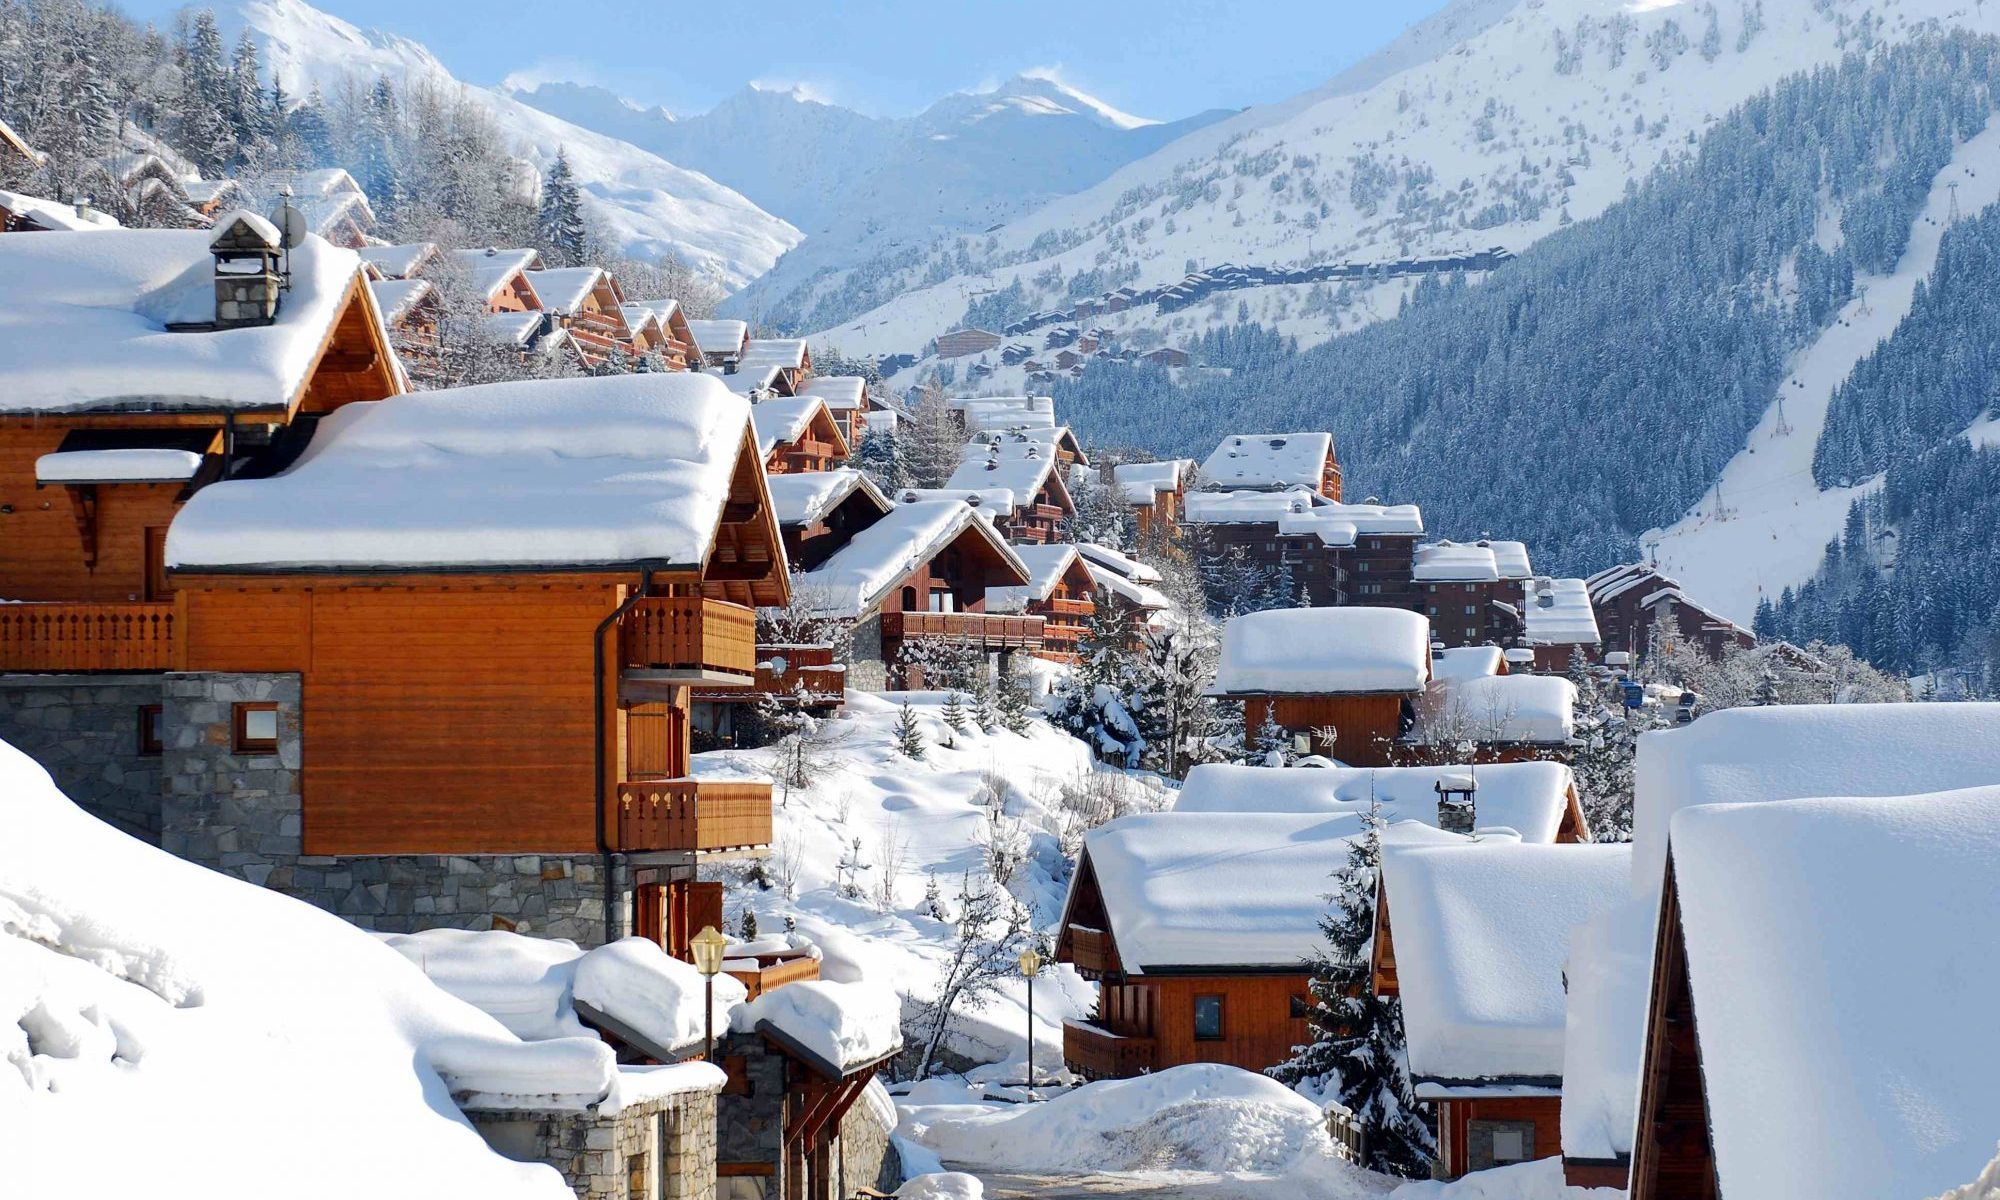 The pretty resort of Méribel in Les Trois Vallées. A British skier dies after falling 32 feet from a chairlift in the French resort of Méribel at the 3 Vallées.